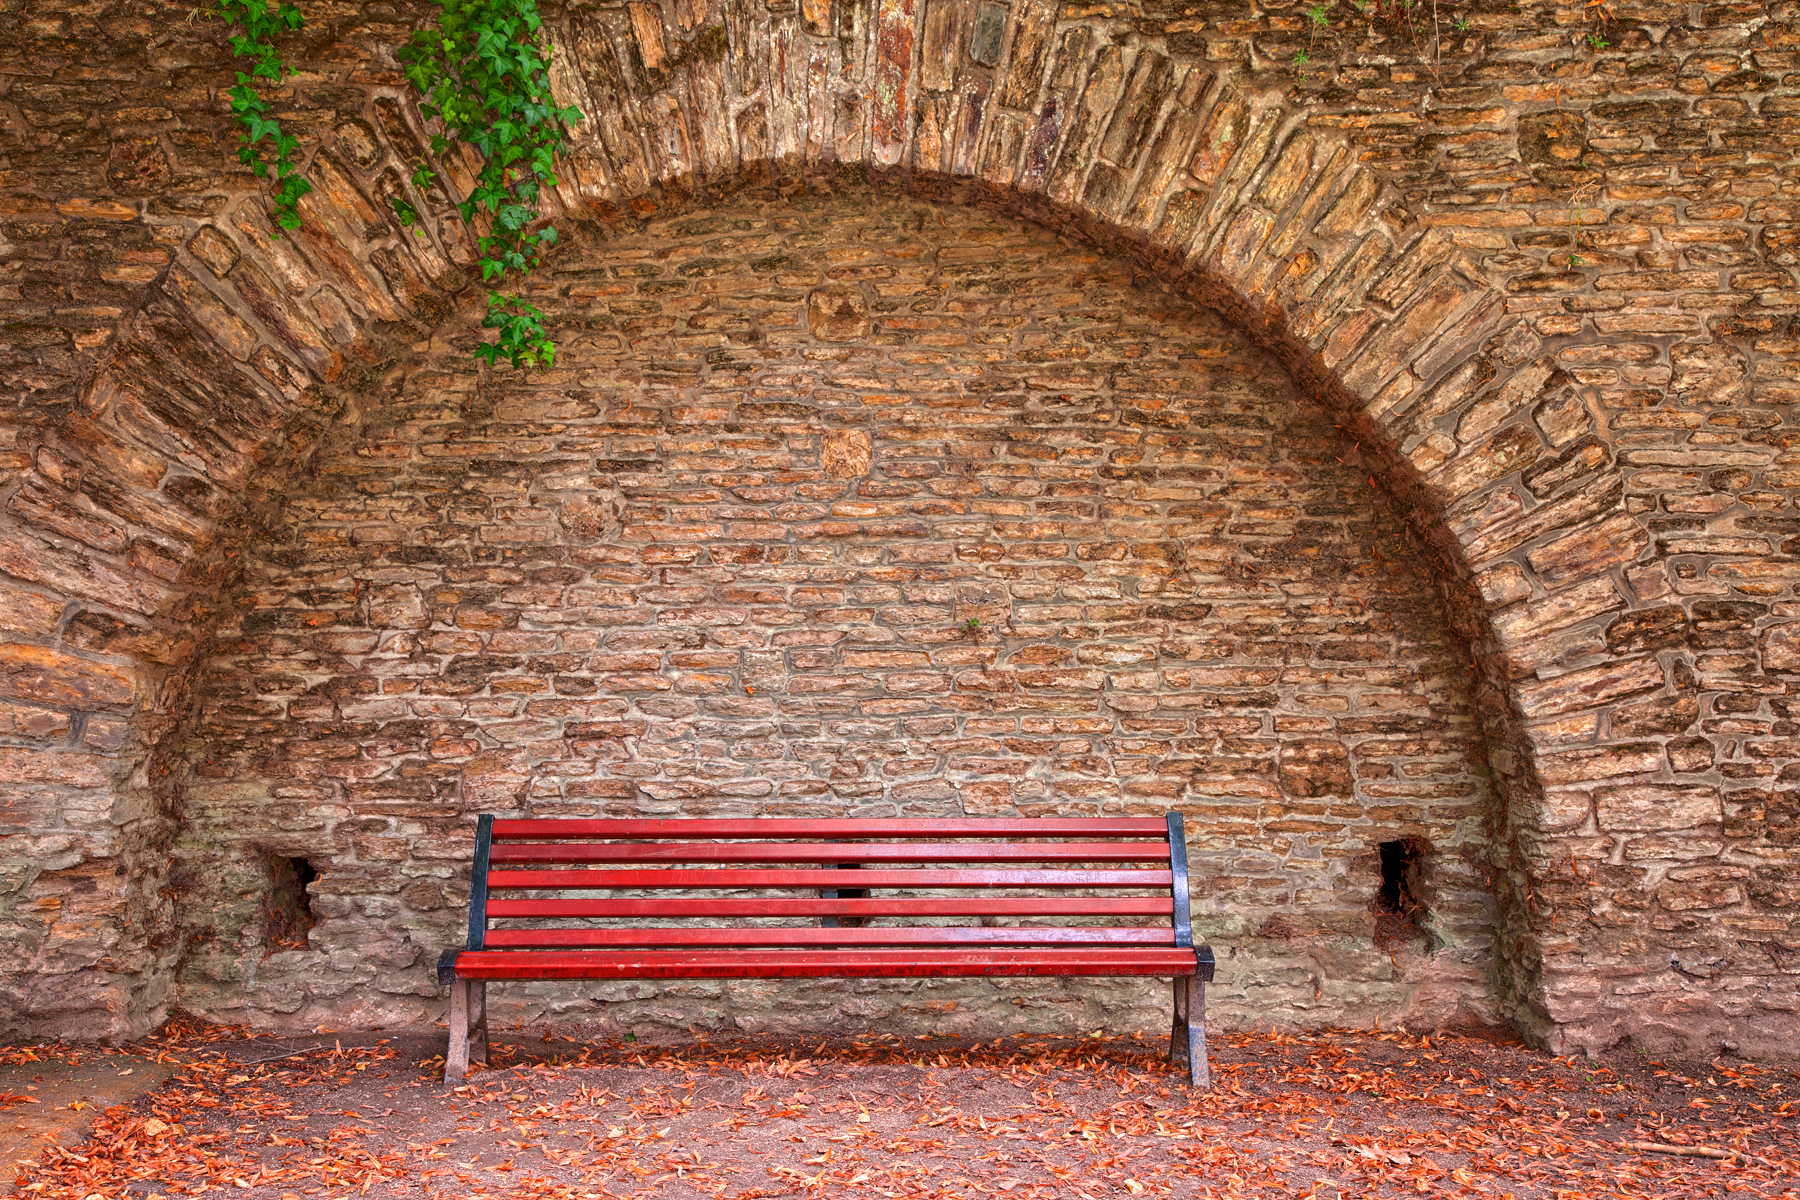 Old World Bench - HDR, Ancient, Place, Seat, Retro, HQ Photo